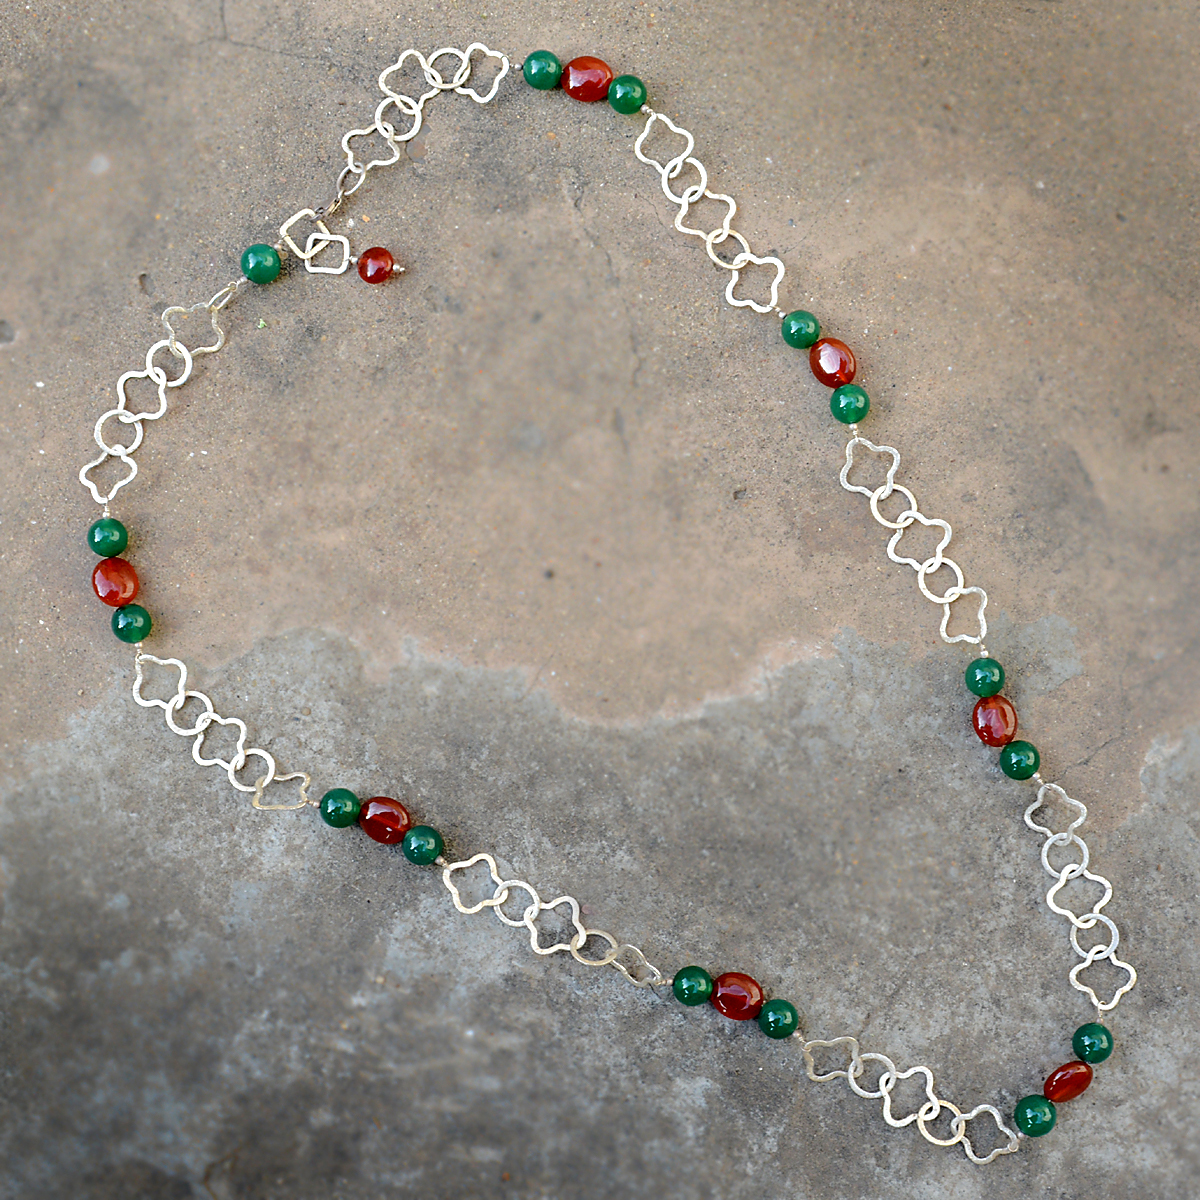 925 Sterling Silver, Handmade Jewelry Manufacturer Green & Red Onyx, Lobster-Claw Hook Jaipur Rajasthan India Necklace